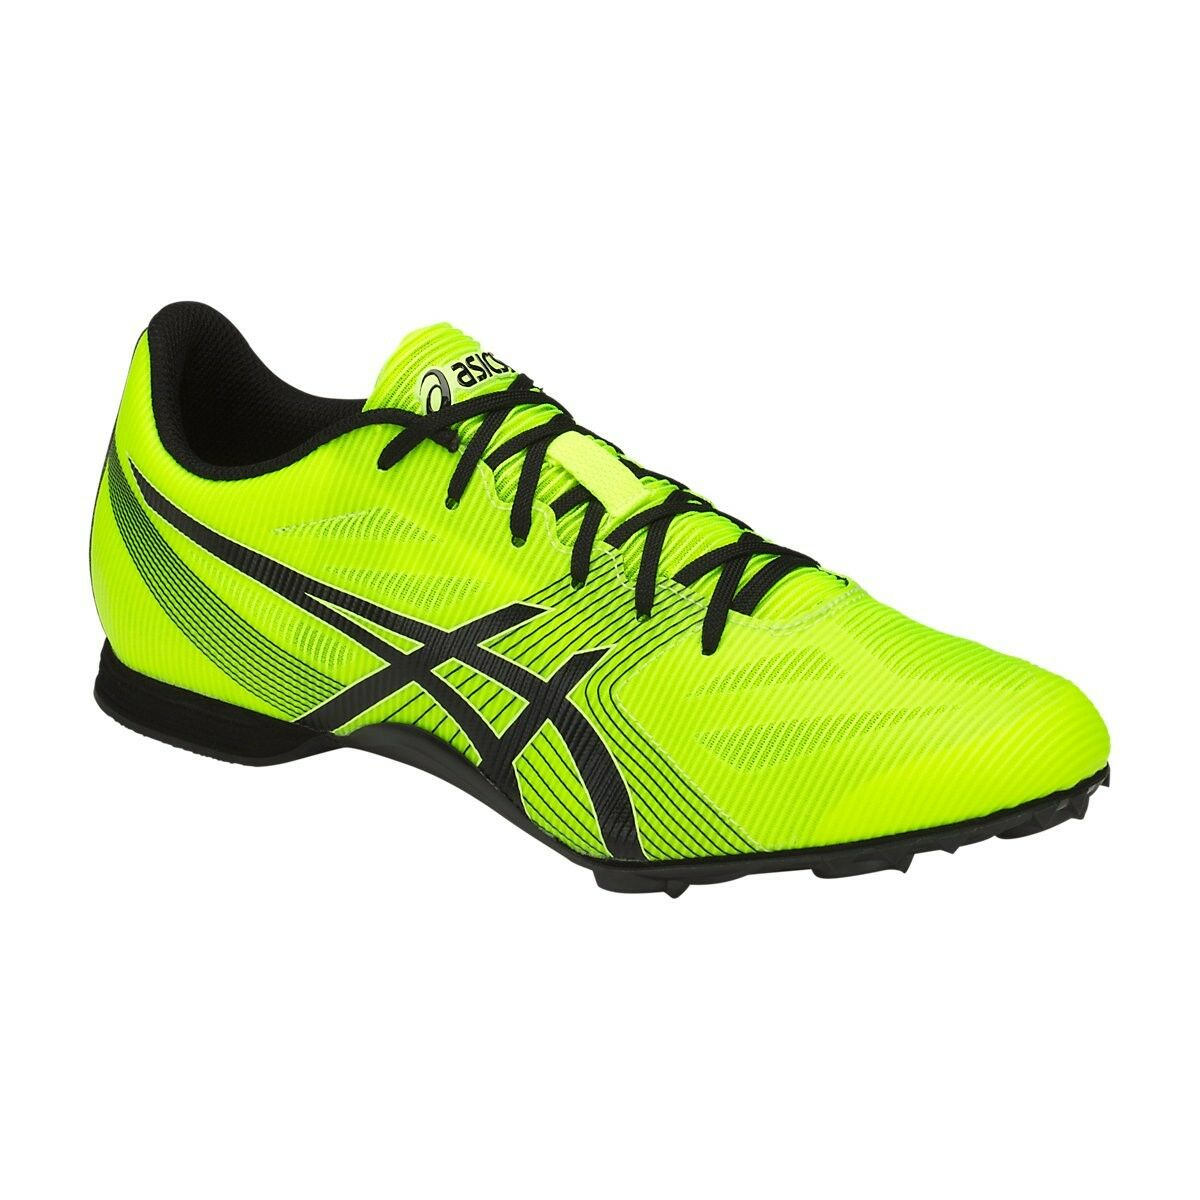 Asics HYPER MD 6 hommes G502Y.0790 Yellow/ noir Track/Field Chaussures